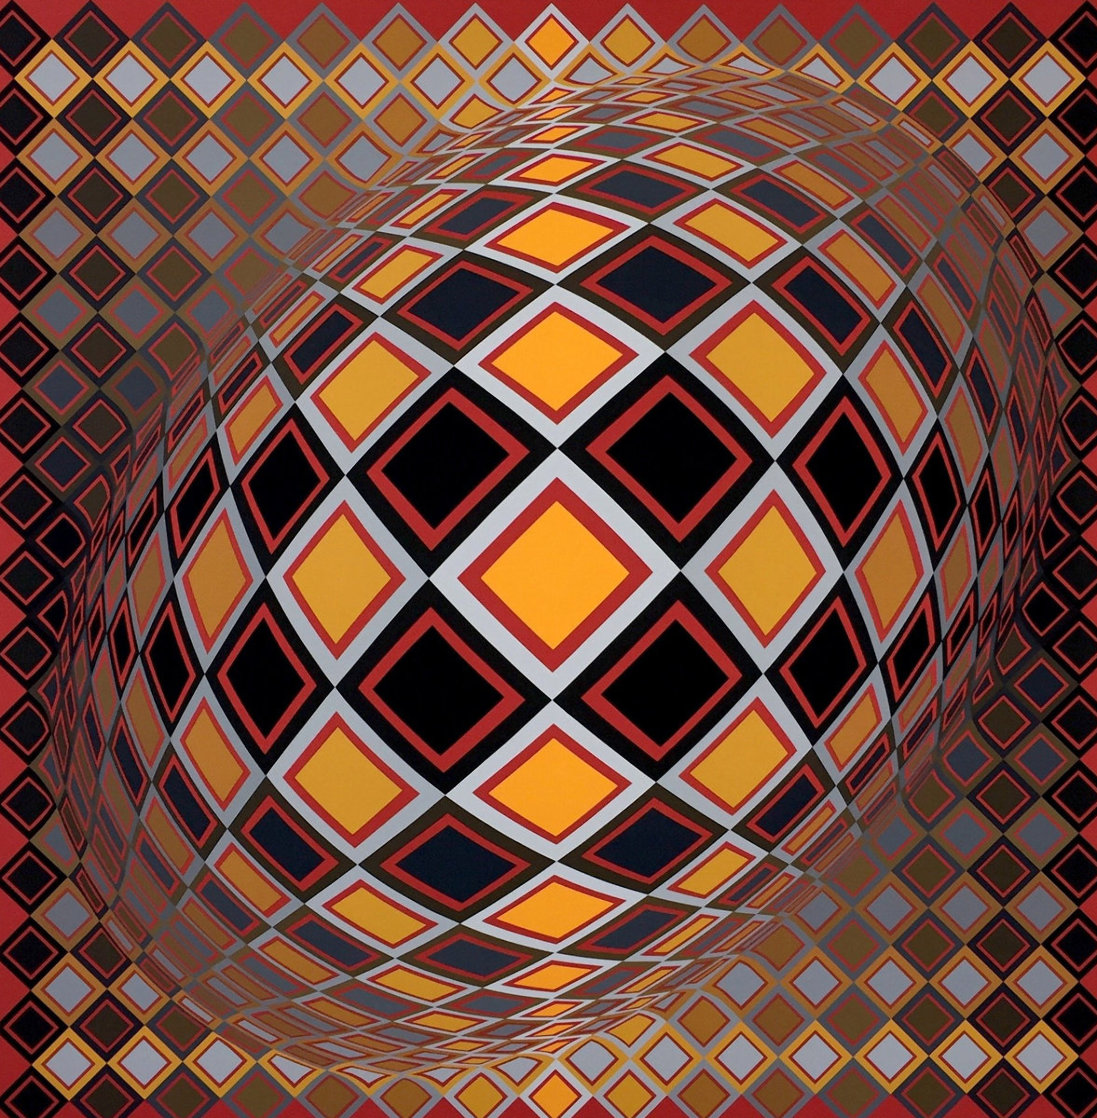 Teke 1970 (Early) Limited Edition Print by Victor Vasarely